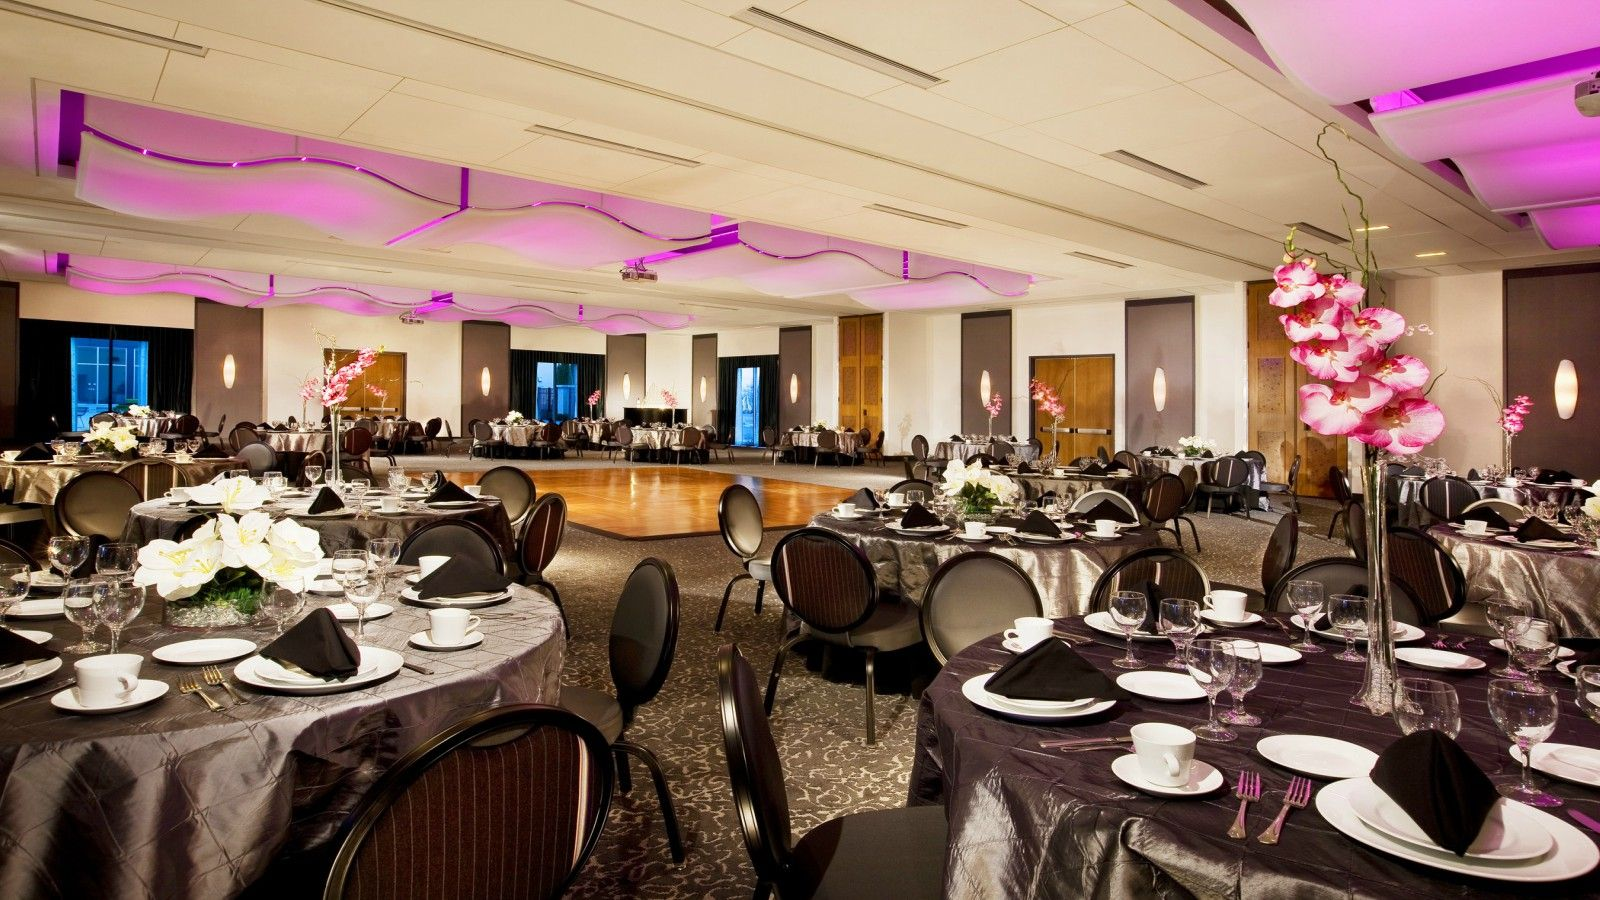 Wedding Venues in South Jersey - Pink Room